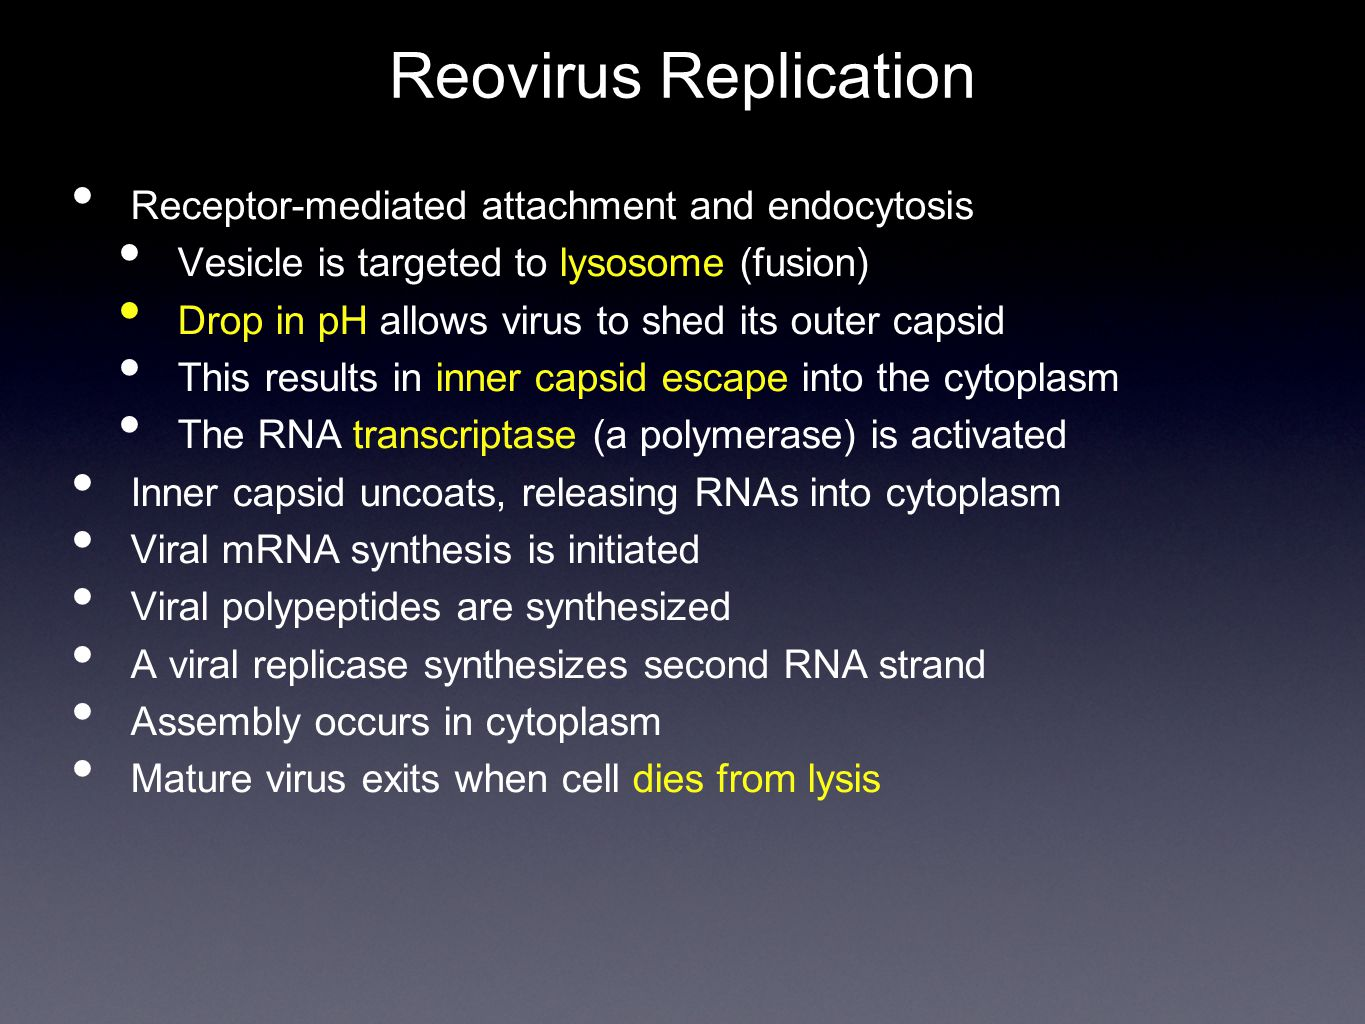 Reovirus Replication Receptor-mediated attachment and endocytosis Vesicle is targeted to lysosome (fusion) Drop in pH allows virus to shed its outer capsid This results in inner capsid escape into the cytoplasm The RNA transcriptase (a polymerase) is activated Inner capsid uncoats, releasing RNAs into cytoplasm Viral mRNA synthesis is initiated Viral polypeptides are synthesized A viral replicase synthesizes second RNA strand Assembly occurs in cytoplasm Mature virus exits when cell dies from lysis